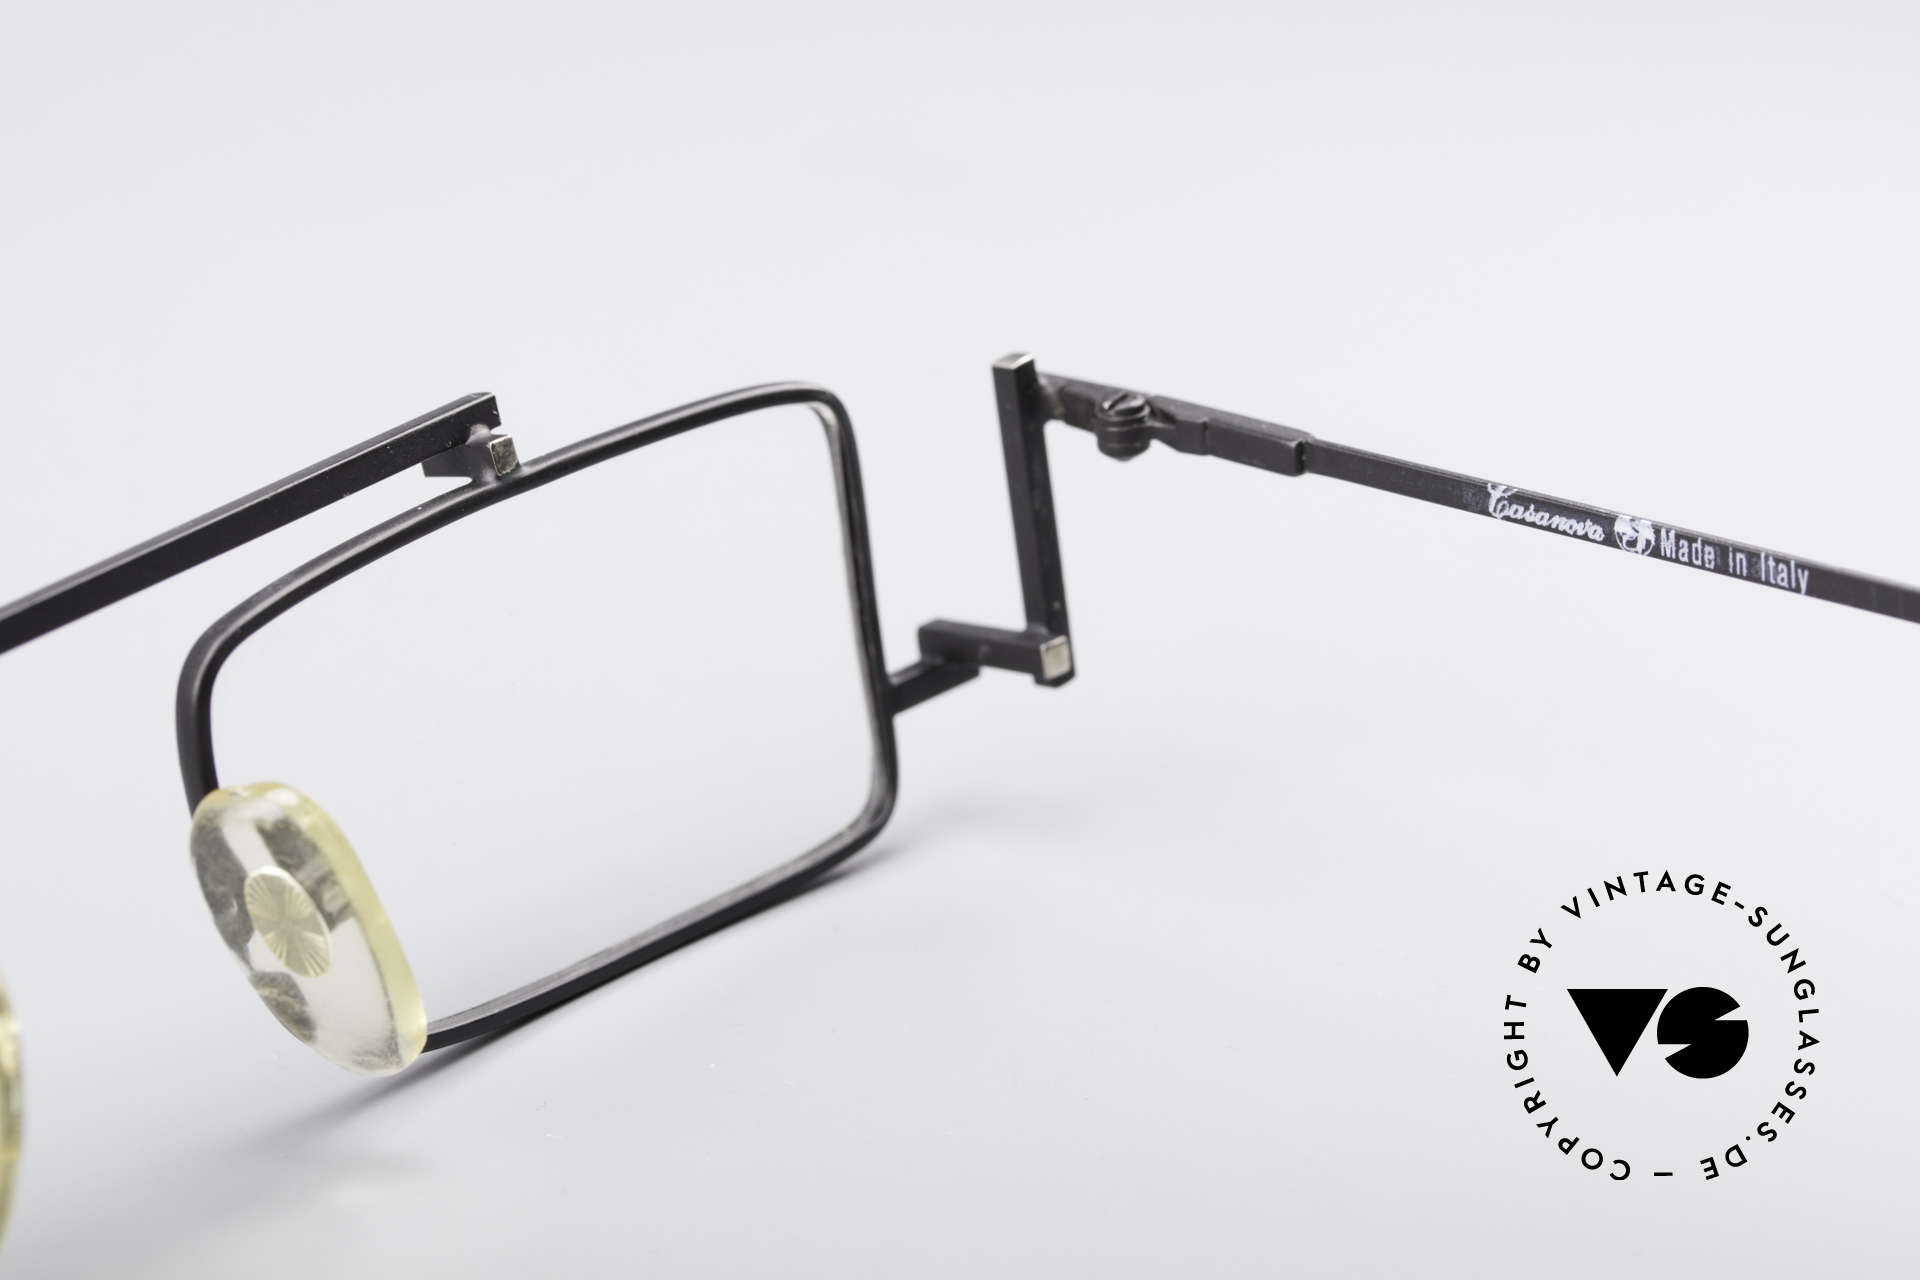 Casanova RVC3 Industrial Steampunk Frame, NOS - unworn (like all our rare vintage 80s eyeglasses), Made for Men and Women